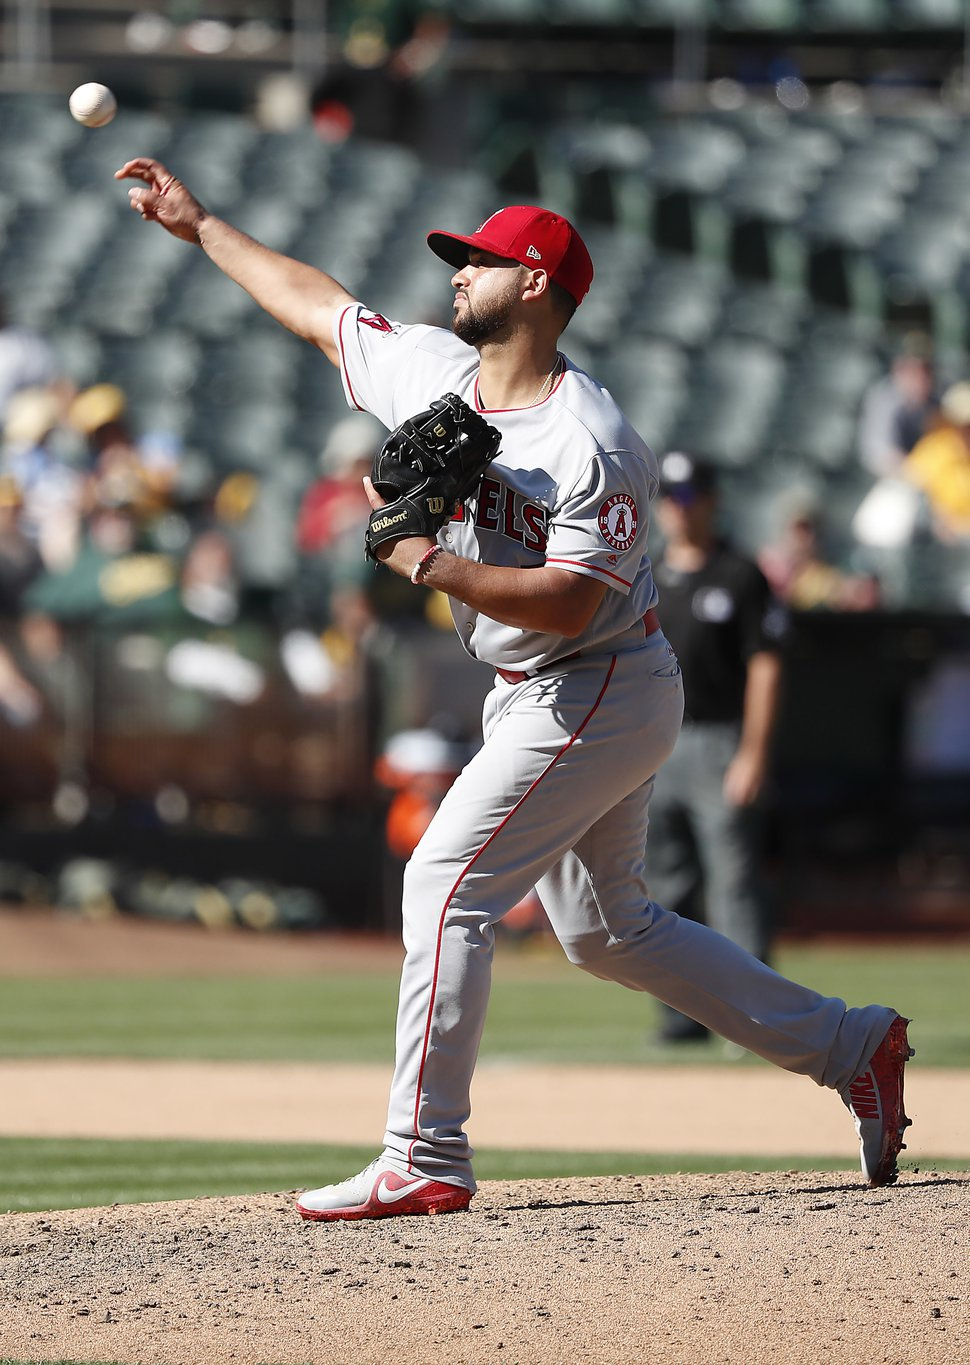 Los Angeles Angels catcher Francisco Arcia (37) pitches against the Oakland Athletics during the eighth inning in a baseball game in Oakland, Calif., Thursday, Sept. 20, 2018. Oakland won 21-3. (AP Photo/Tony Avelar)